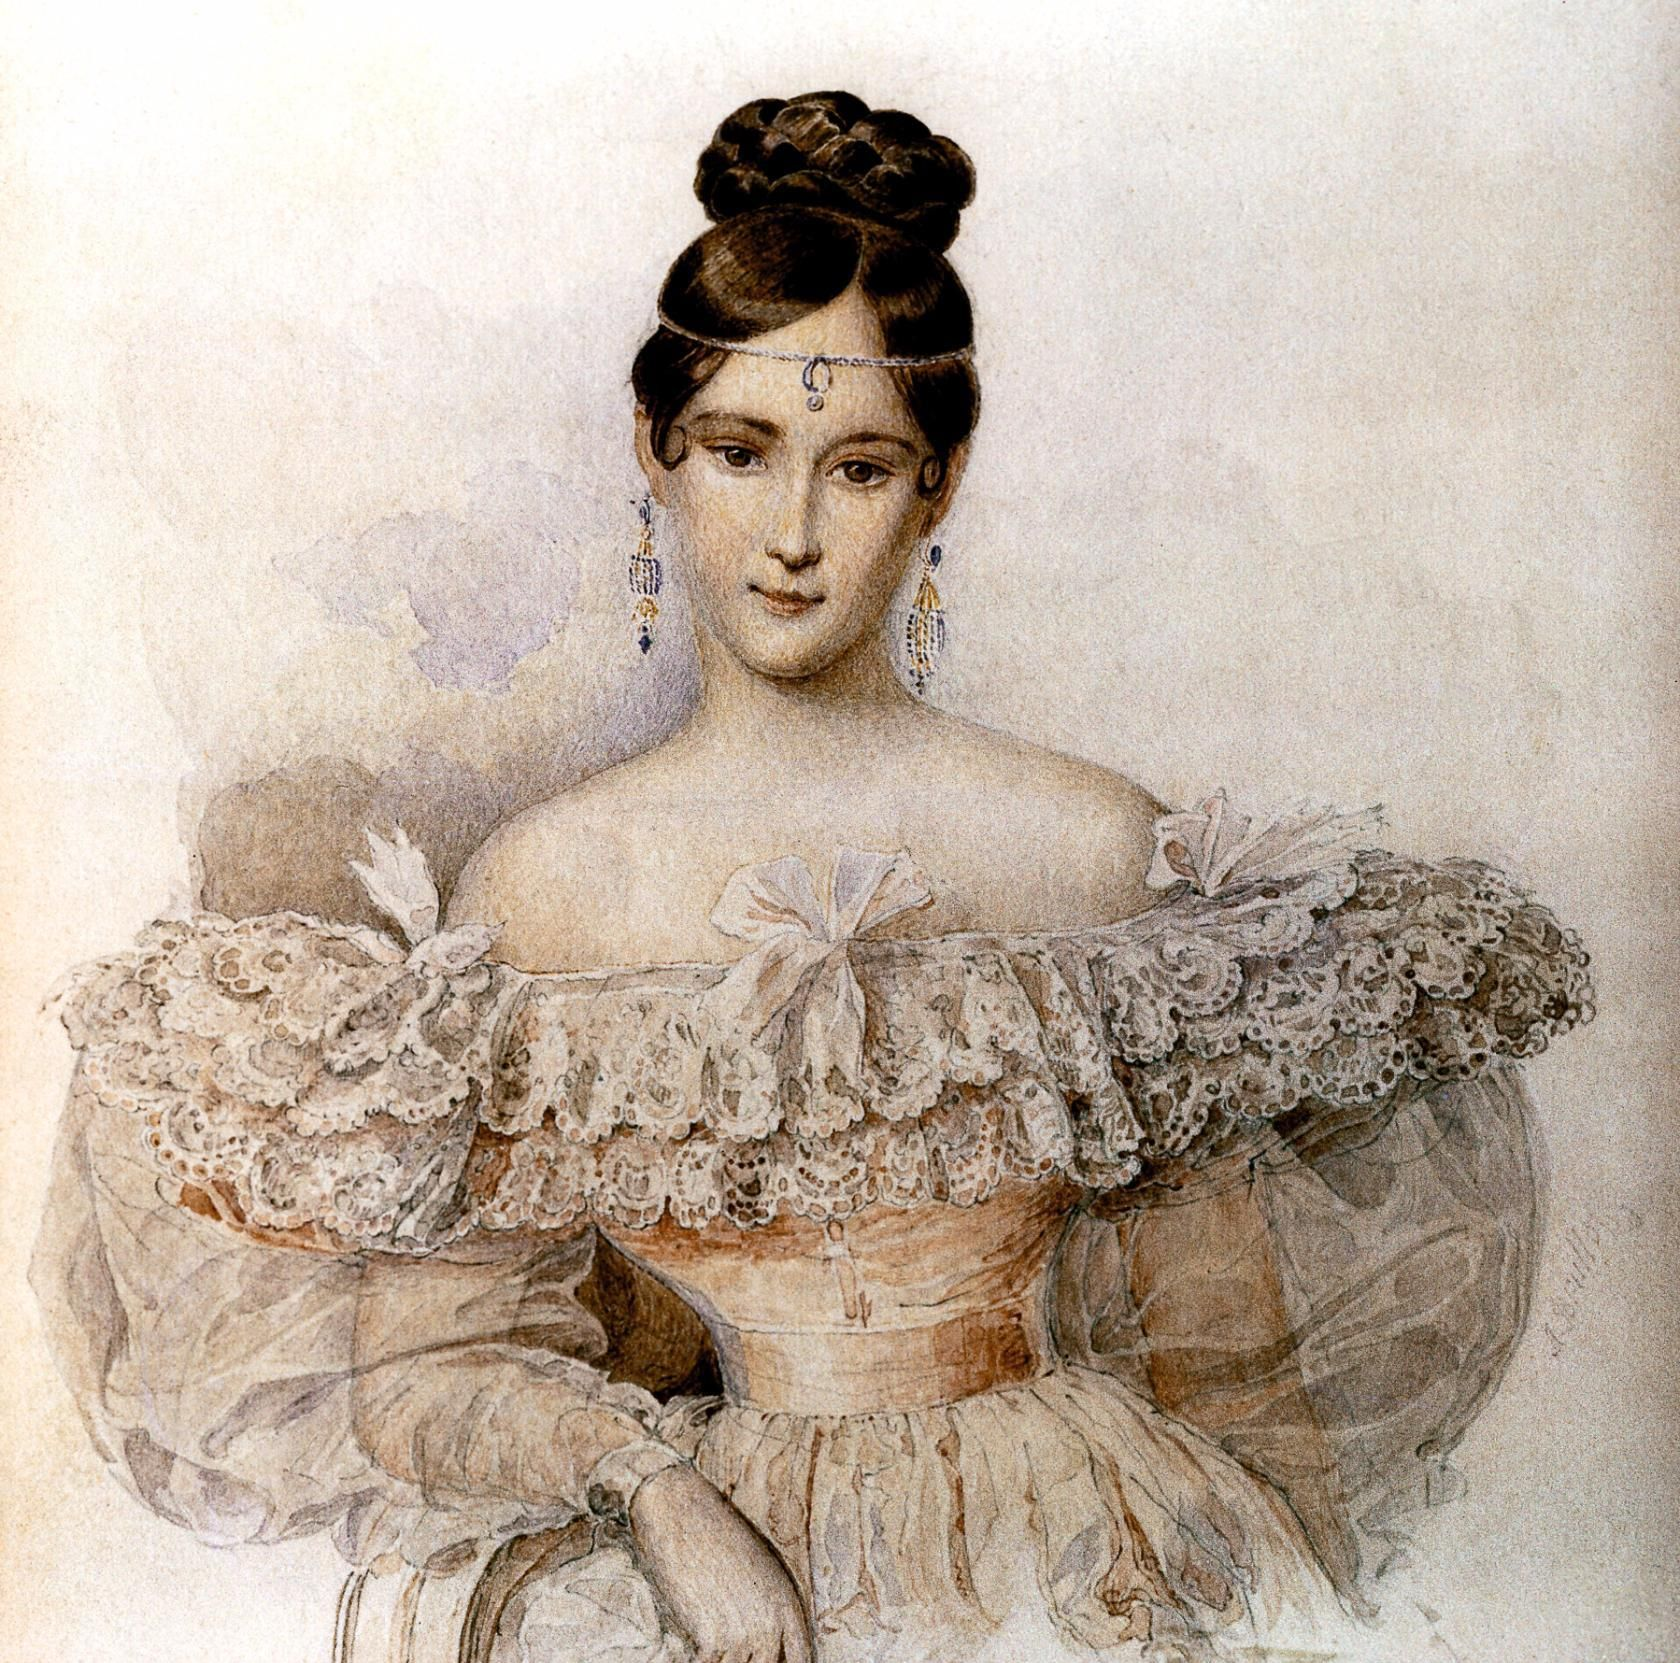 Natalya Nikolaevna Goncharova, the bride and then the wife of Alexander Sergeyevich Pushkin